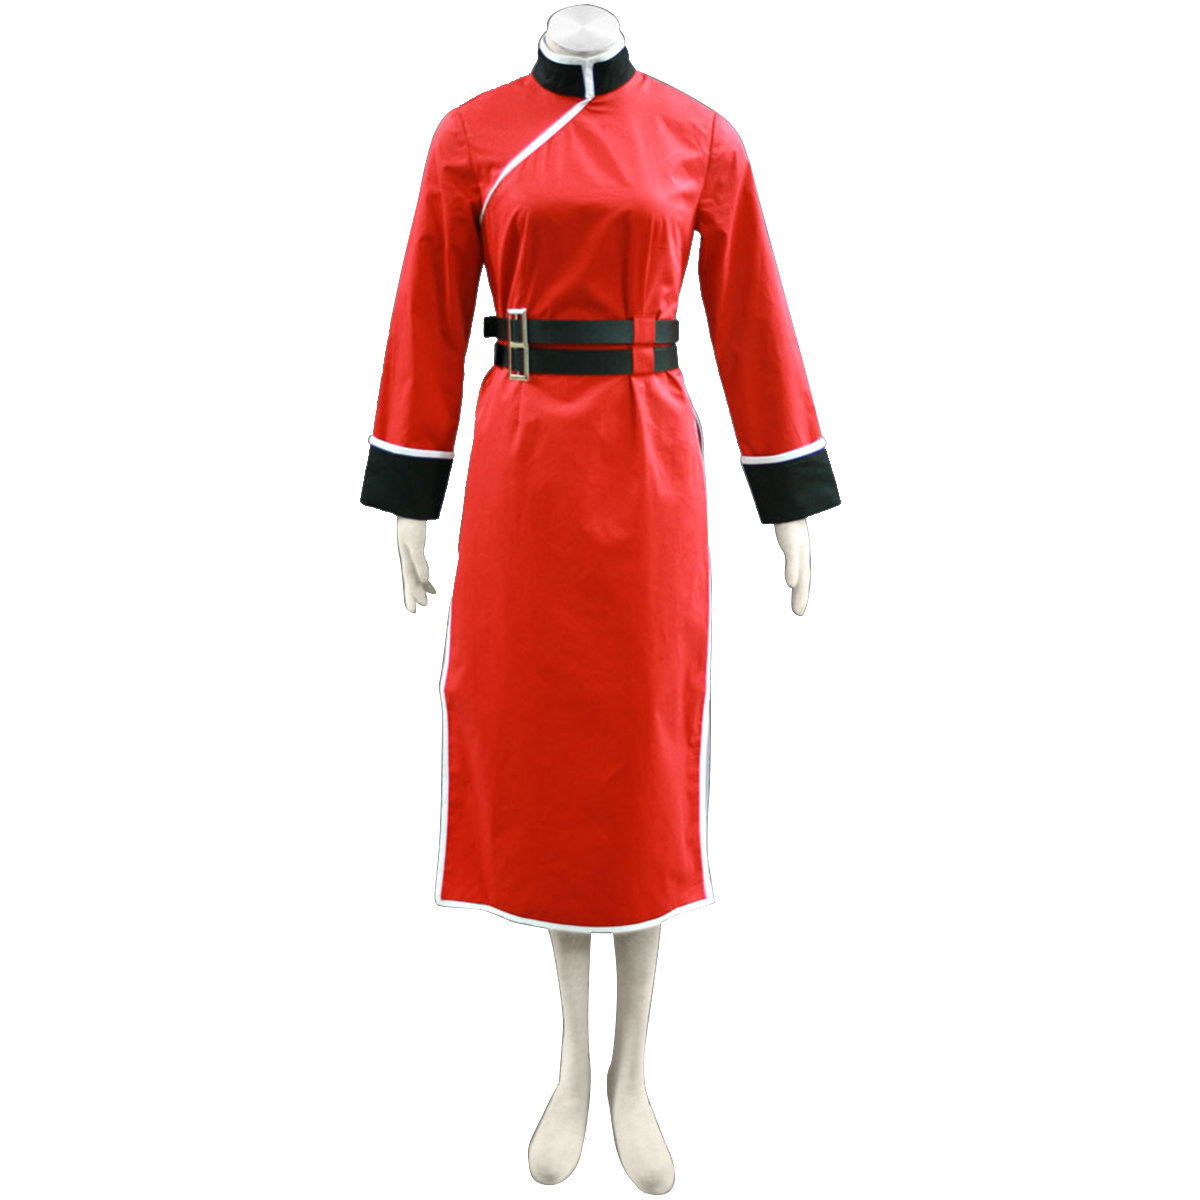 Gin Tama Kagura 4 Cosplay Costumes New Zealand Online Store